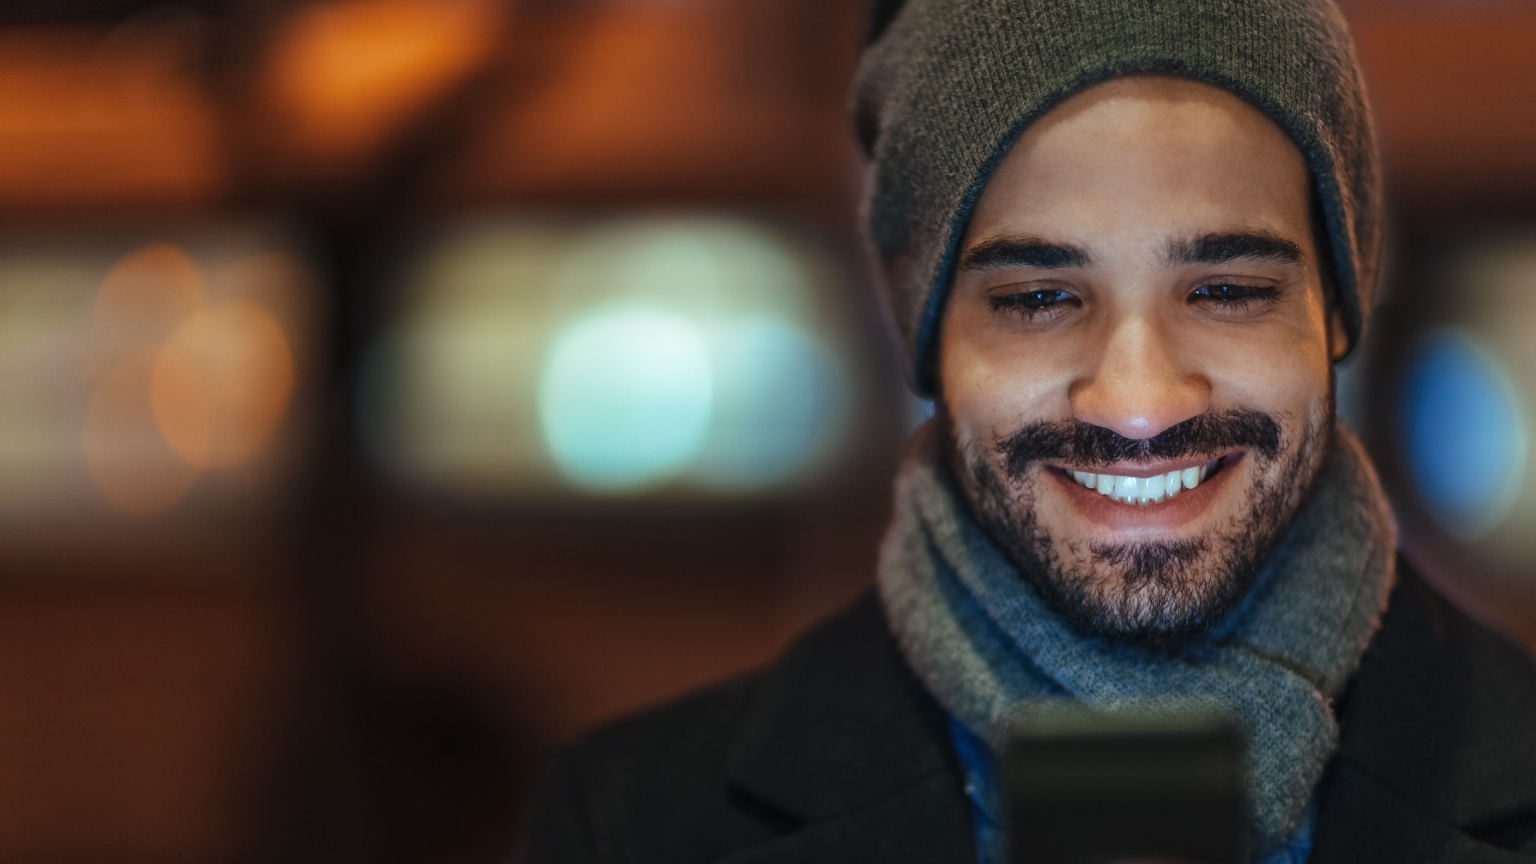 Man with phone smiling